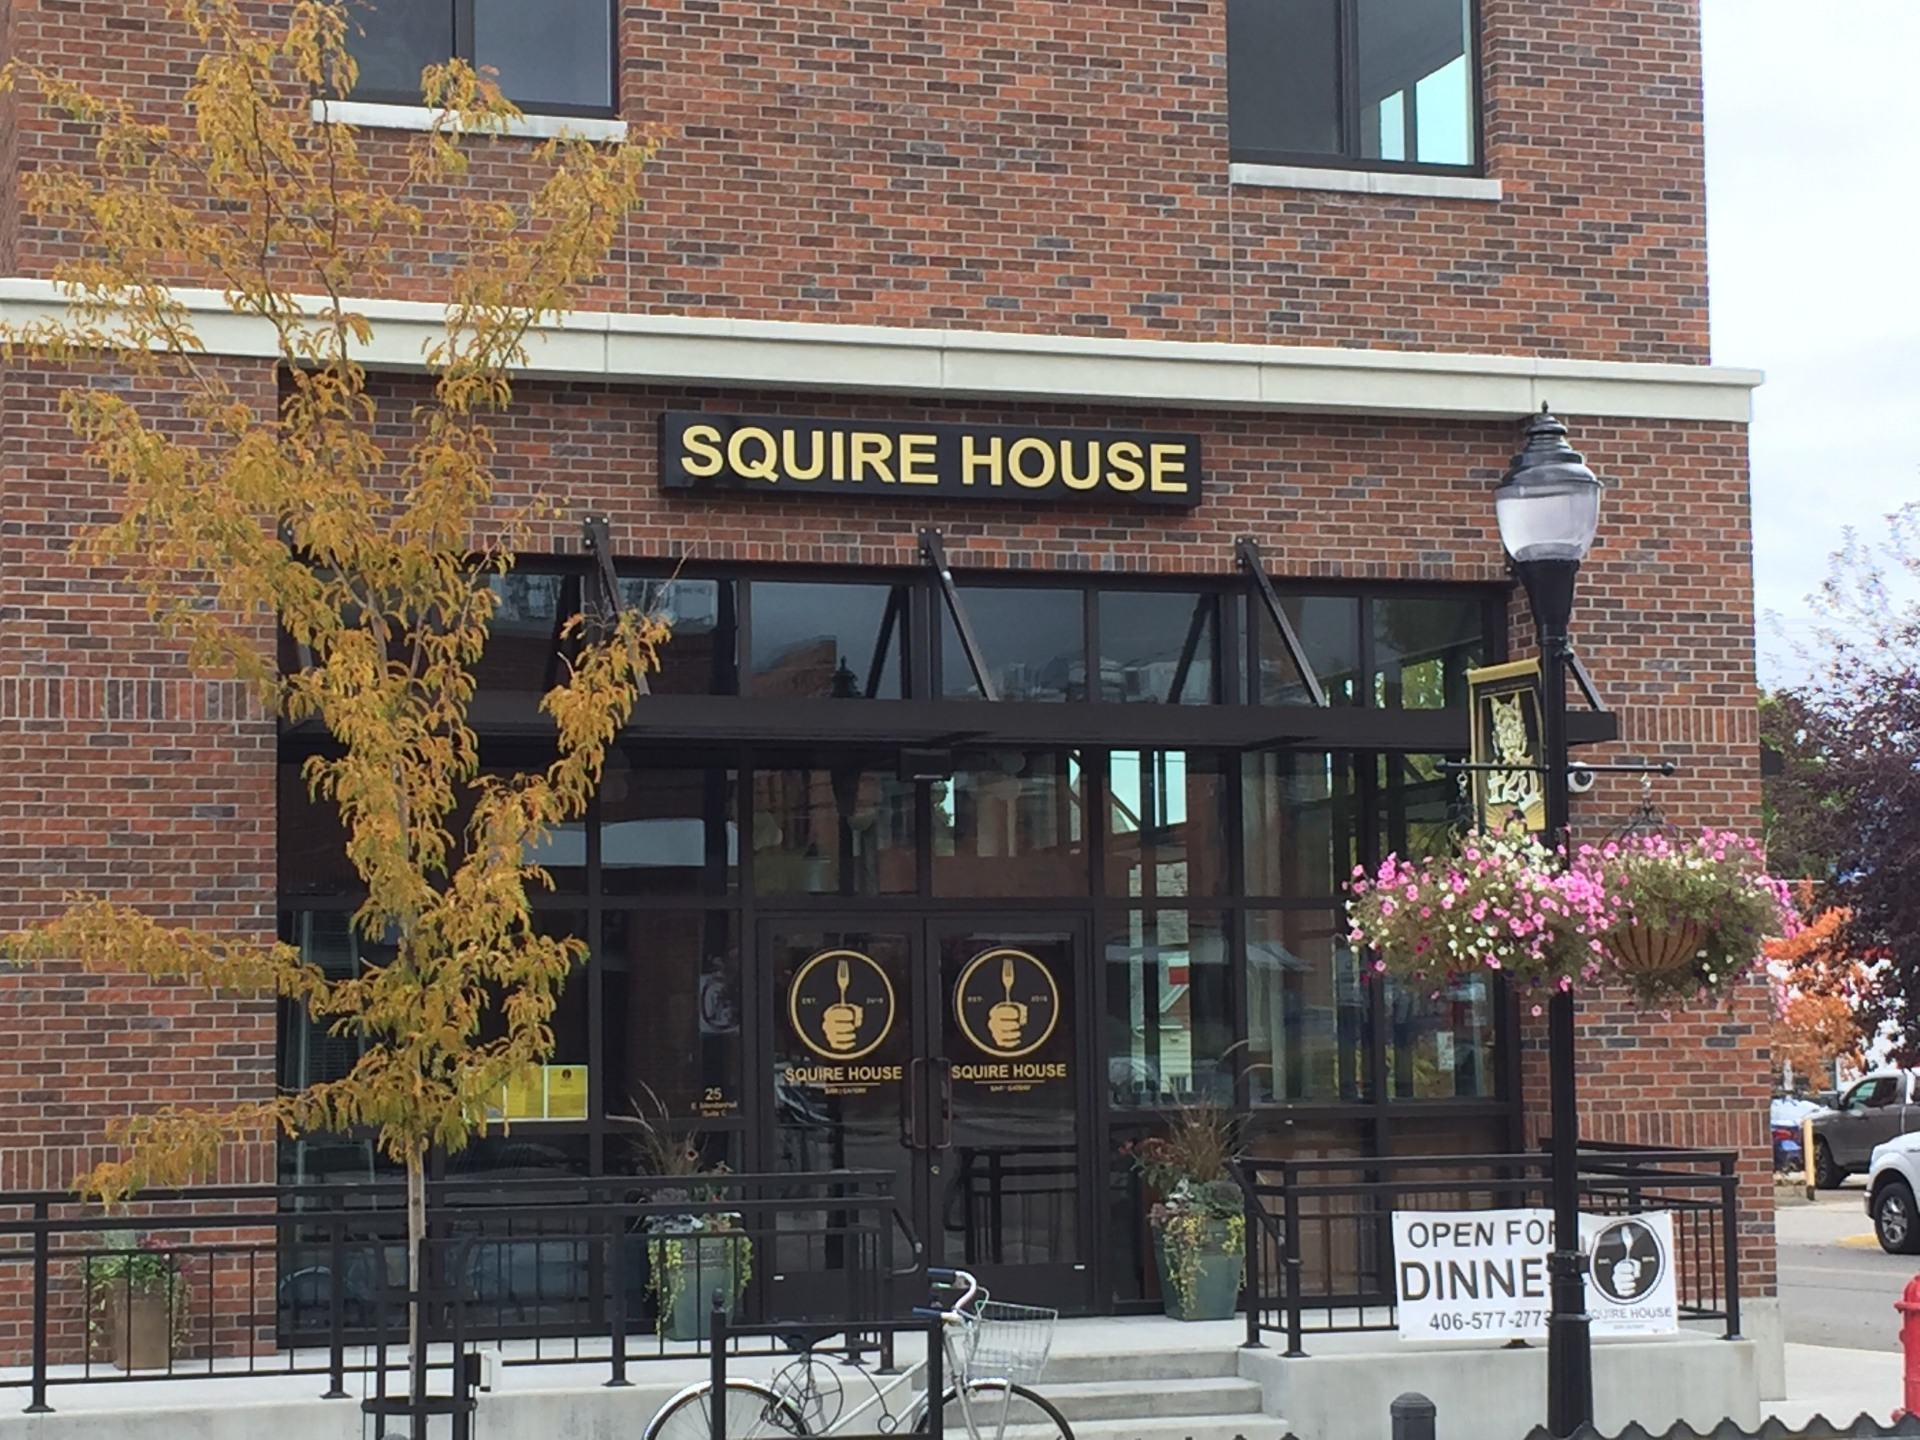 Squire House